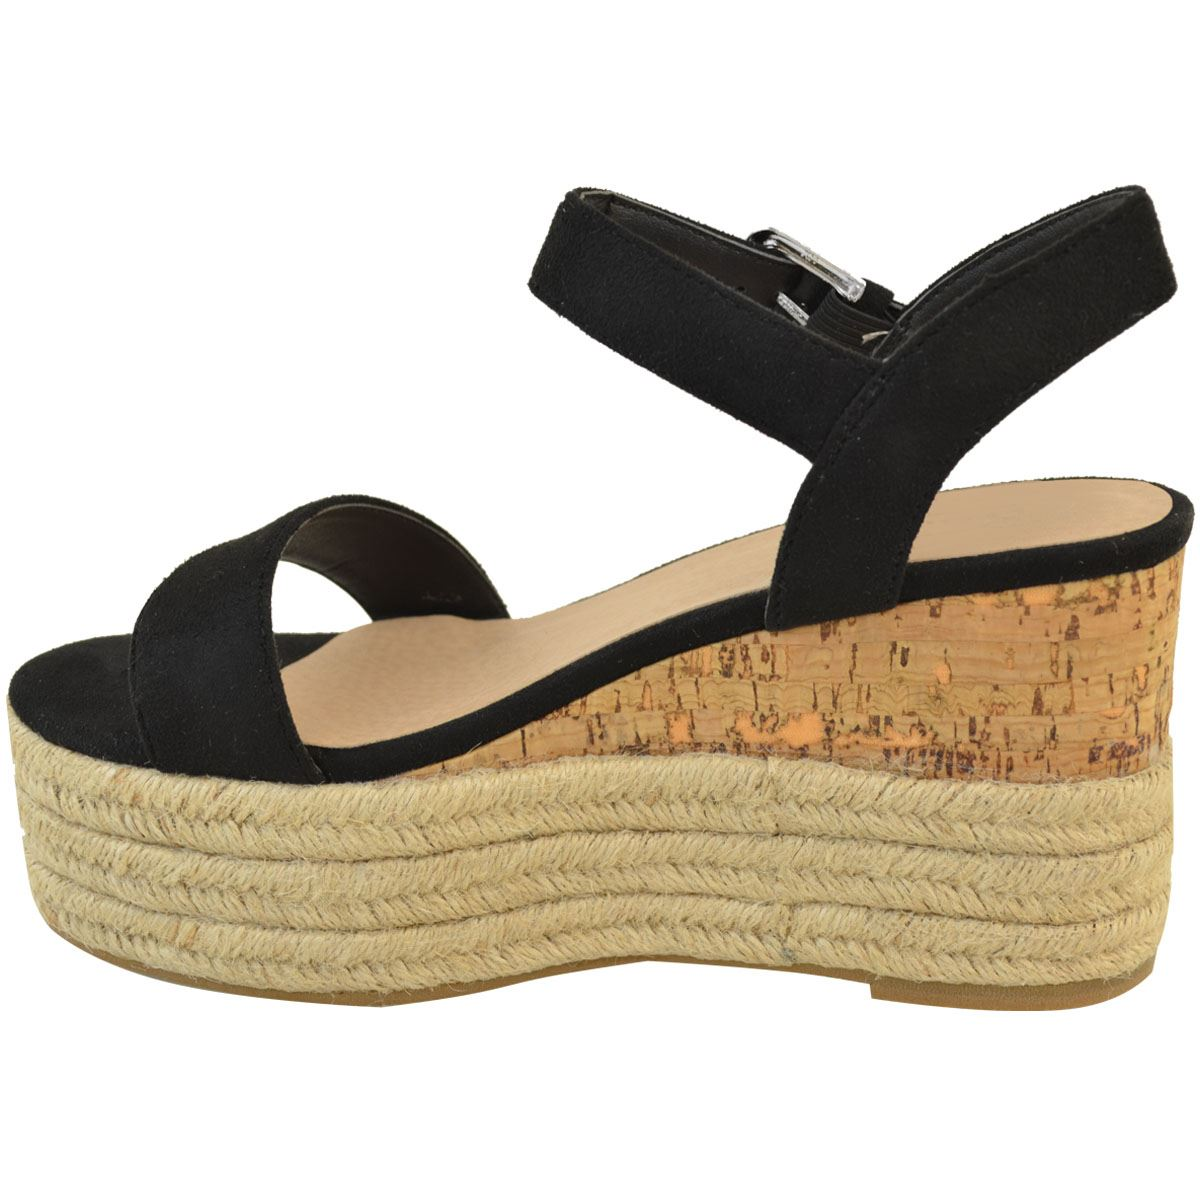 Womens-Ladies-Summer-Platform-Ankle-Strappy-Wedges-Open-Toe-Sandals-Shoes-Size thumbnail 4